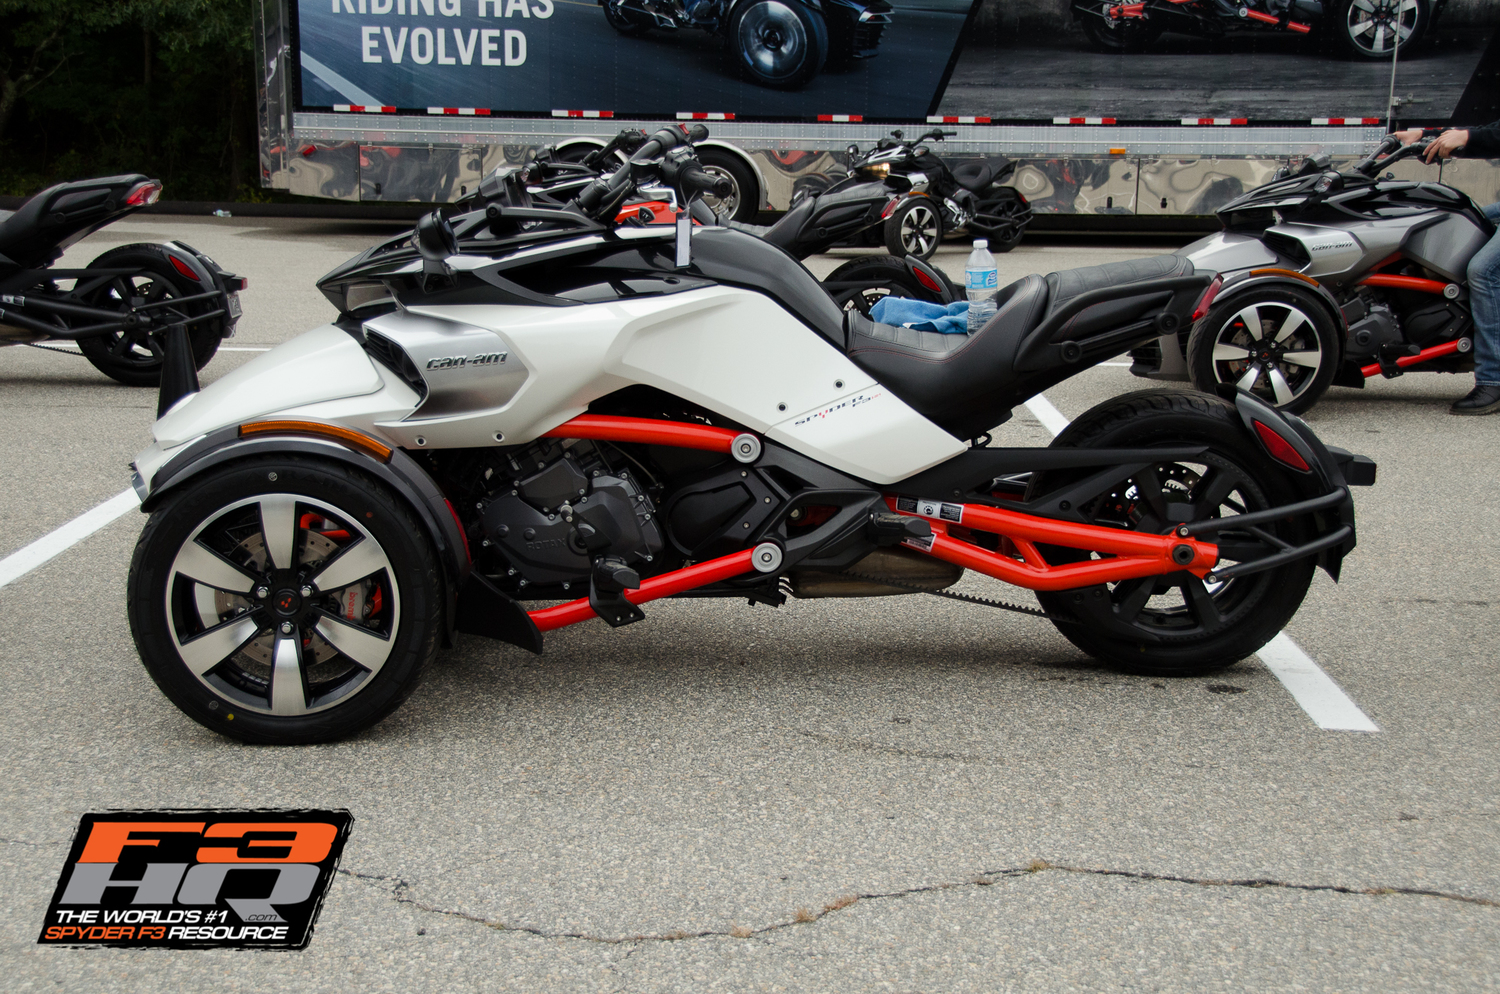 2014 Can-Am Spyder F3 - Product Launch and Ryde-36-26.jpg